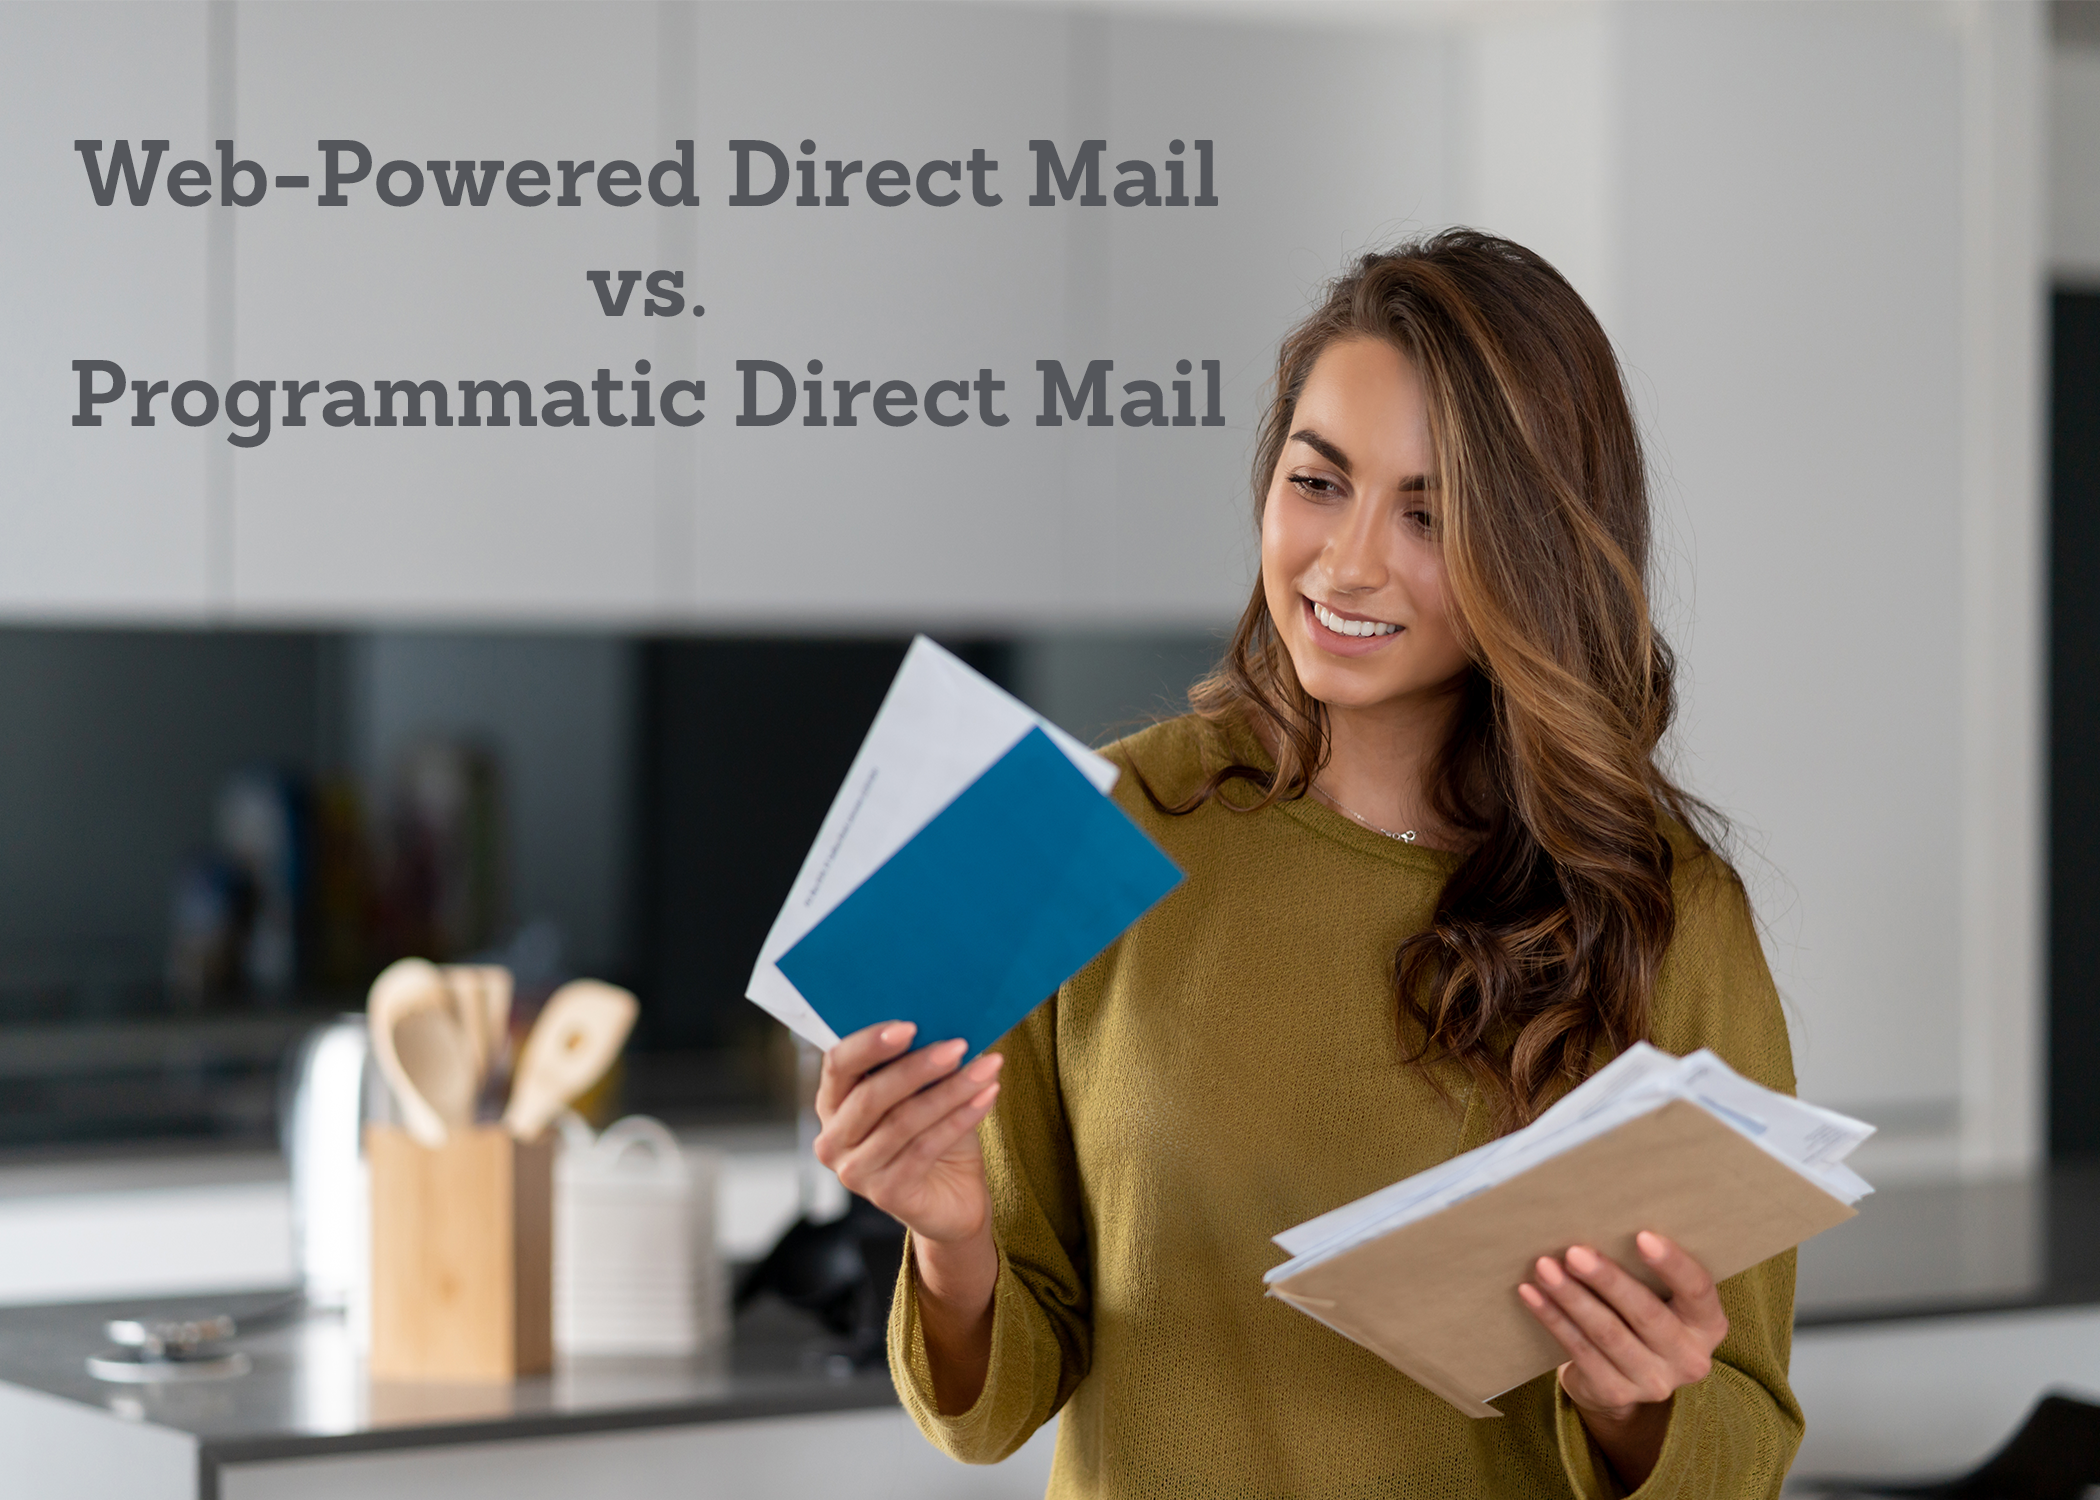 Web-Powered Direct Mail vs. Programmatic Direct Mail